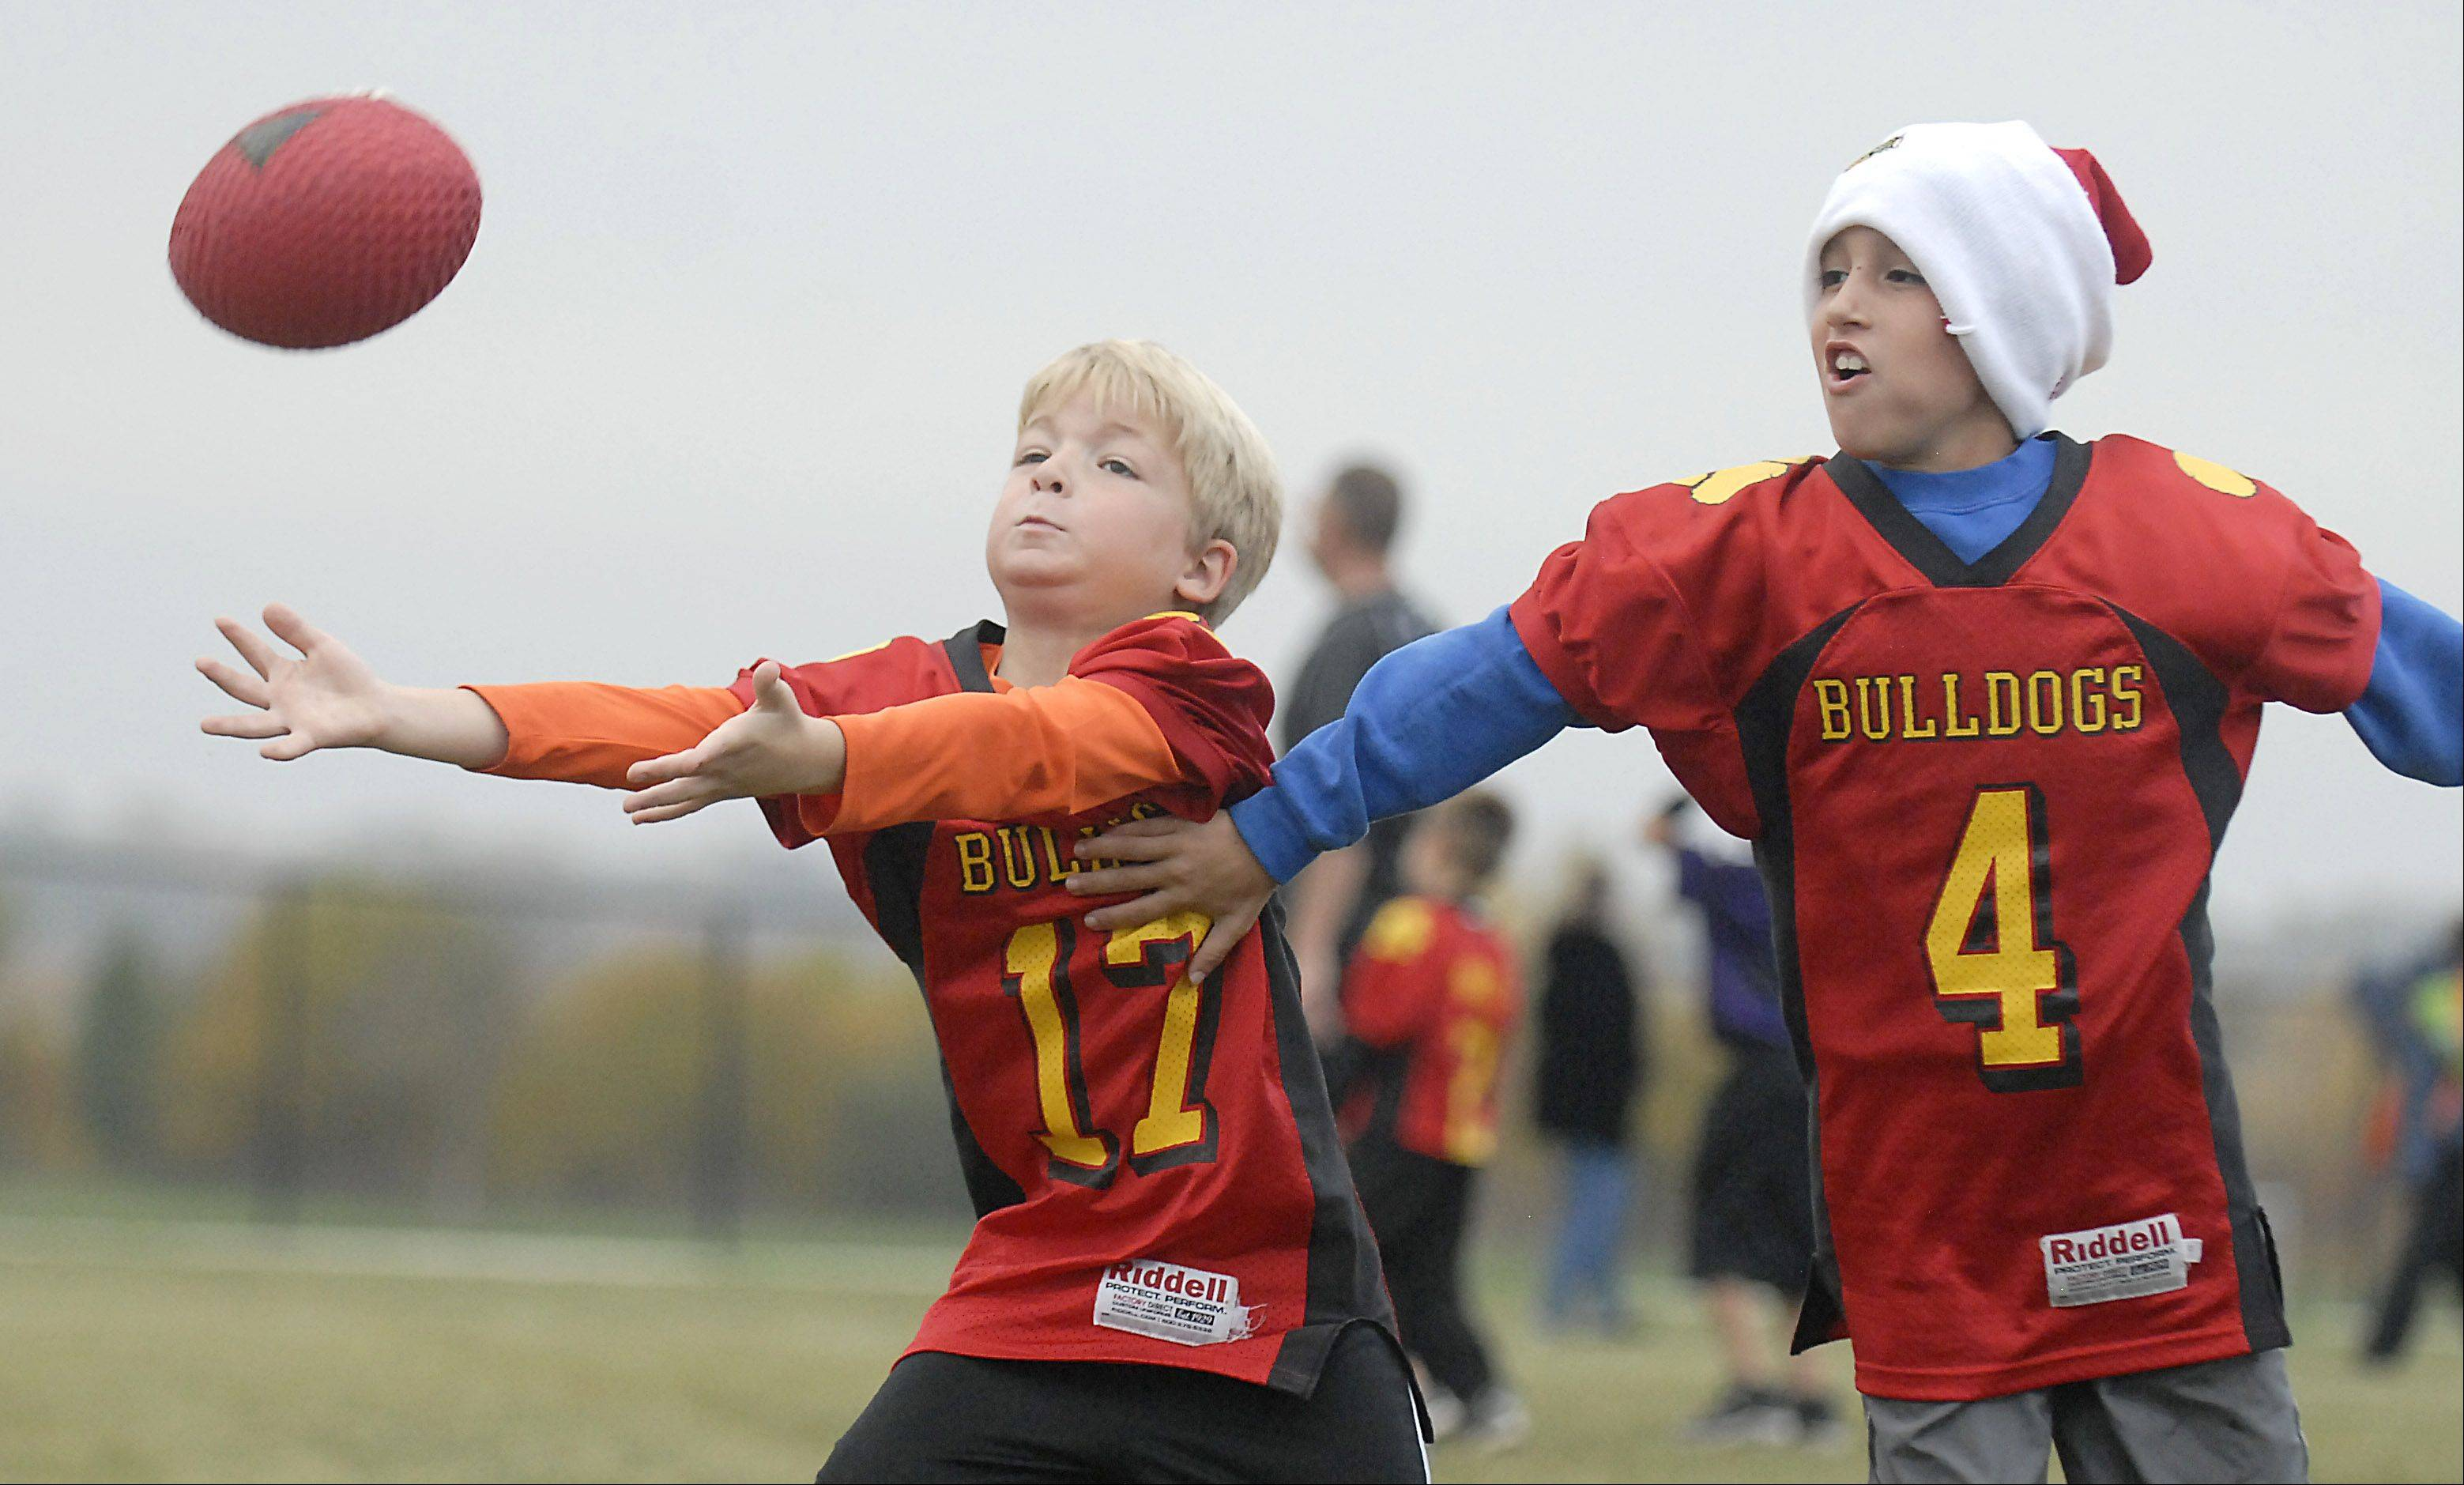 Cody Heeringa, 6, of Batavia, reaches out to receive a pass near Alex Breytspraak, 7, of Aurora during a Batavia Youth Football league in Batavia.